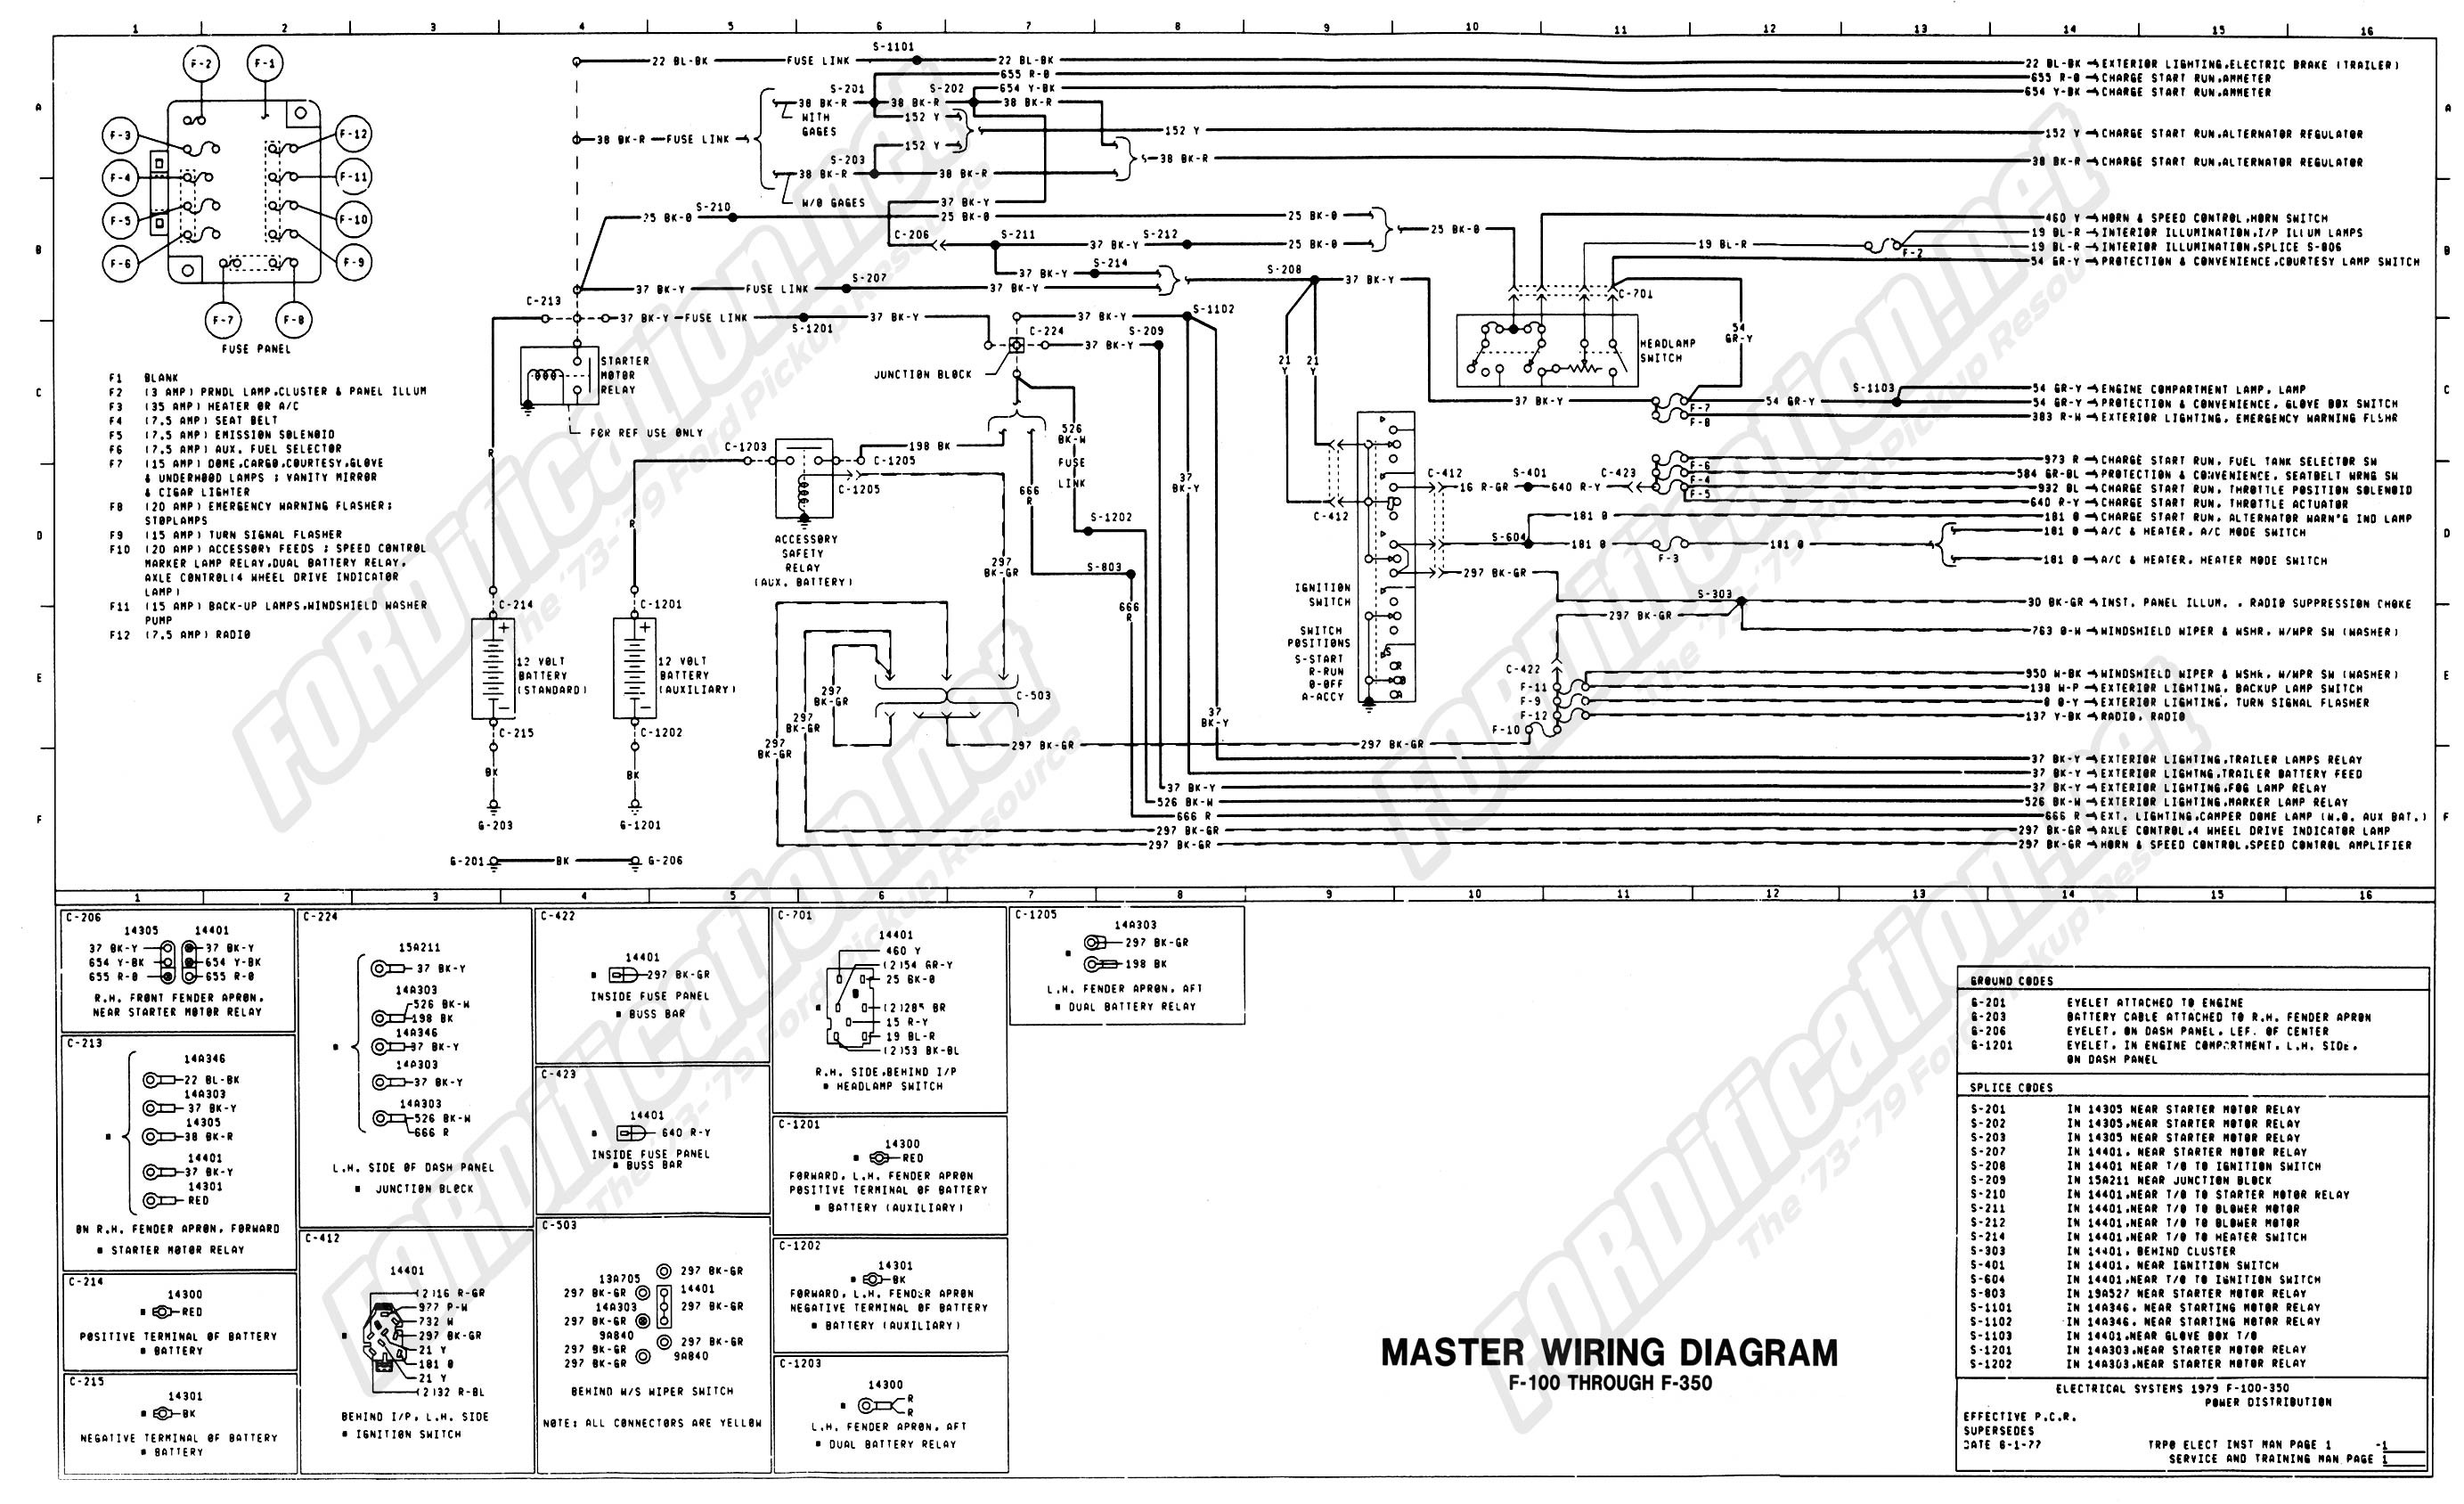 Mitchell Wiring Diagrams Free 1973 1979 ford Truck Wiring Diagrams &  Schematics fordification Of Mitchell Wiring